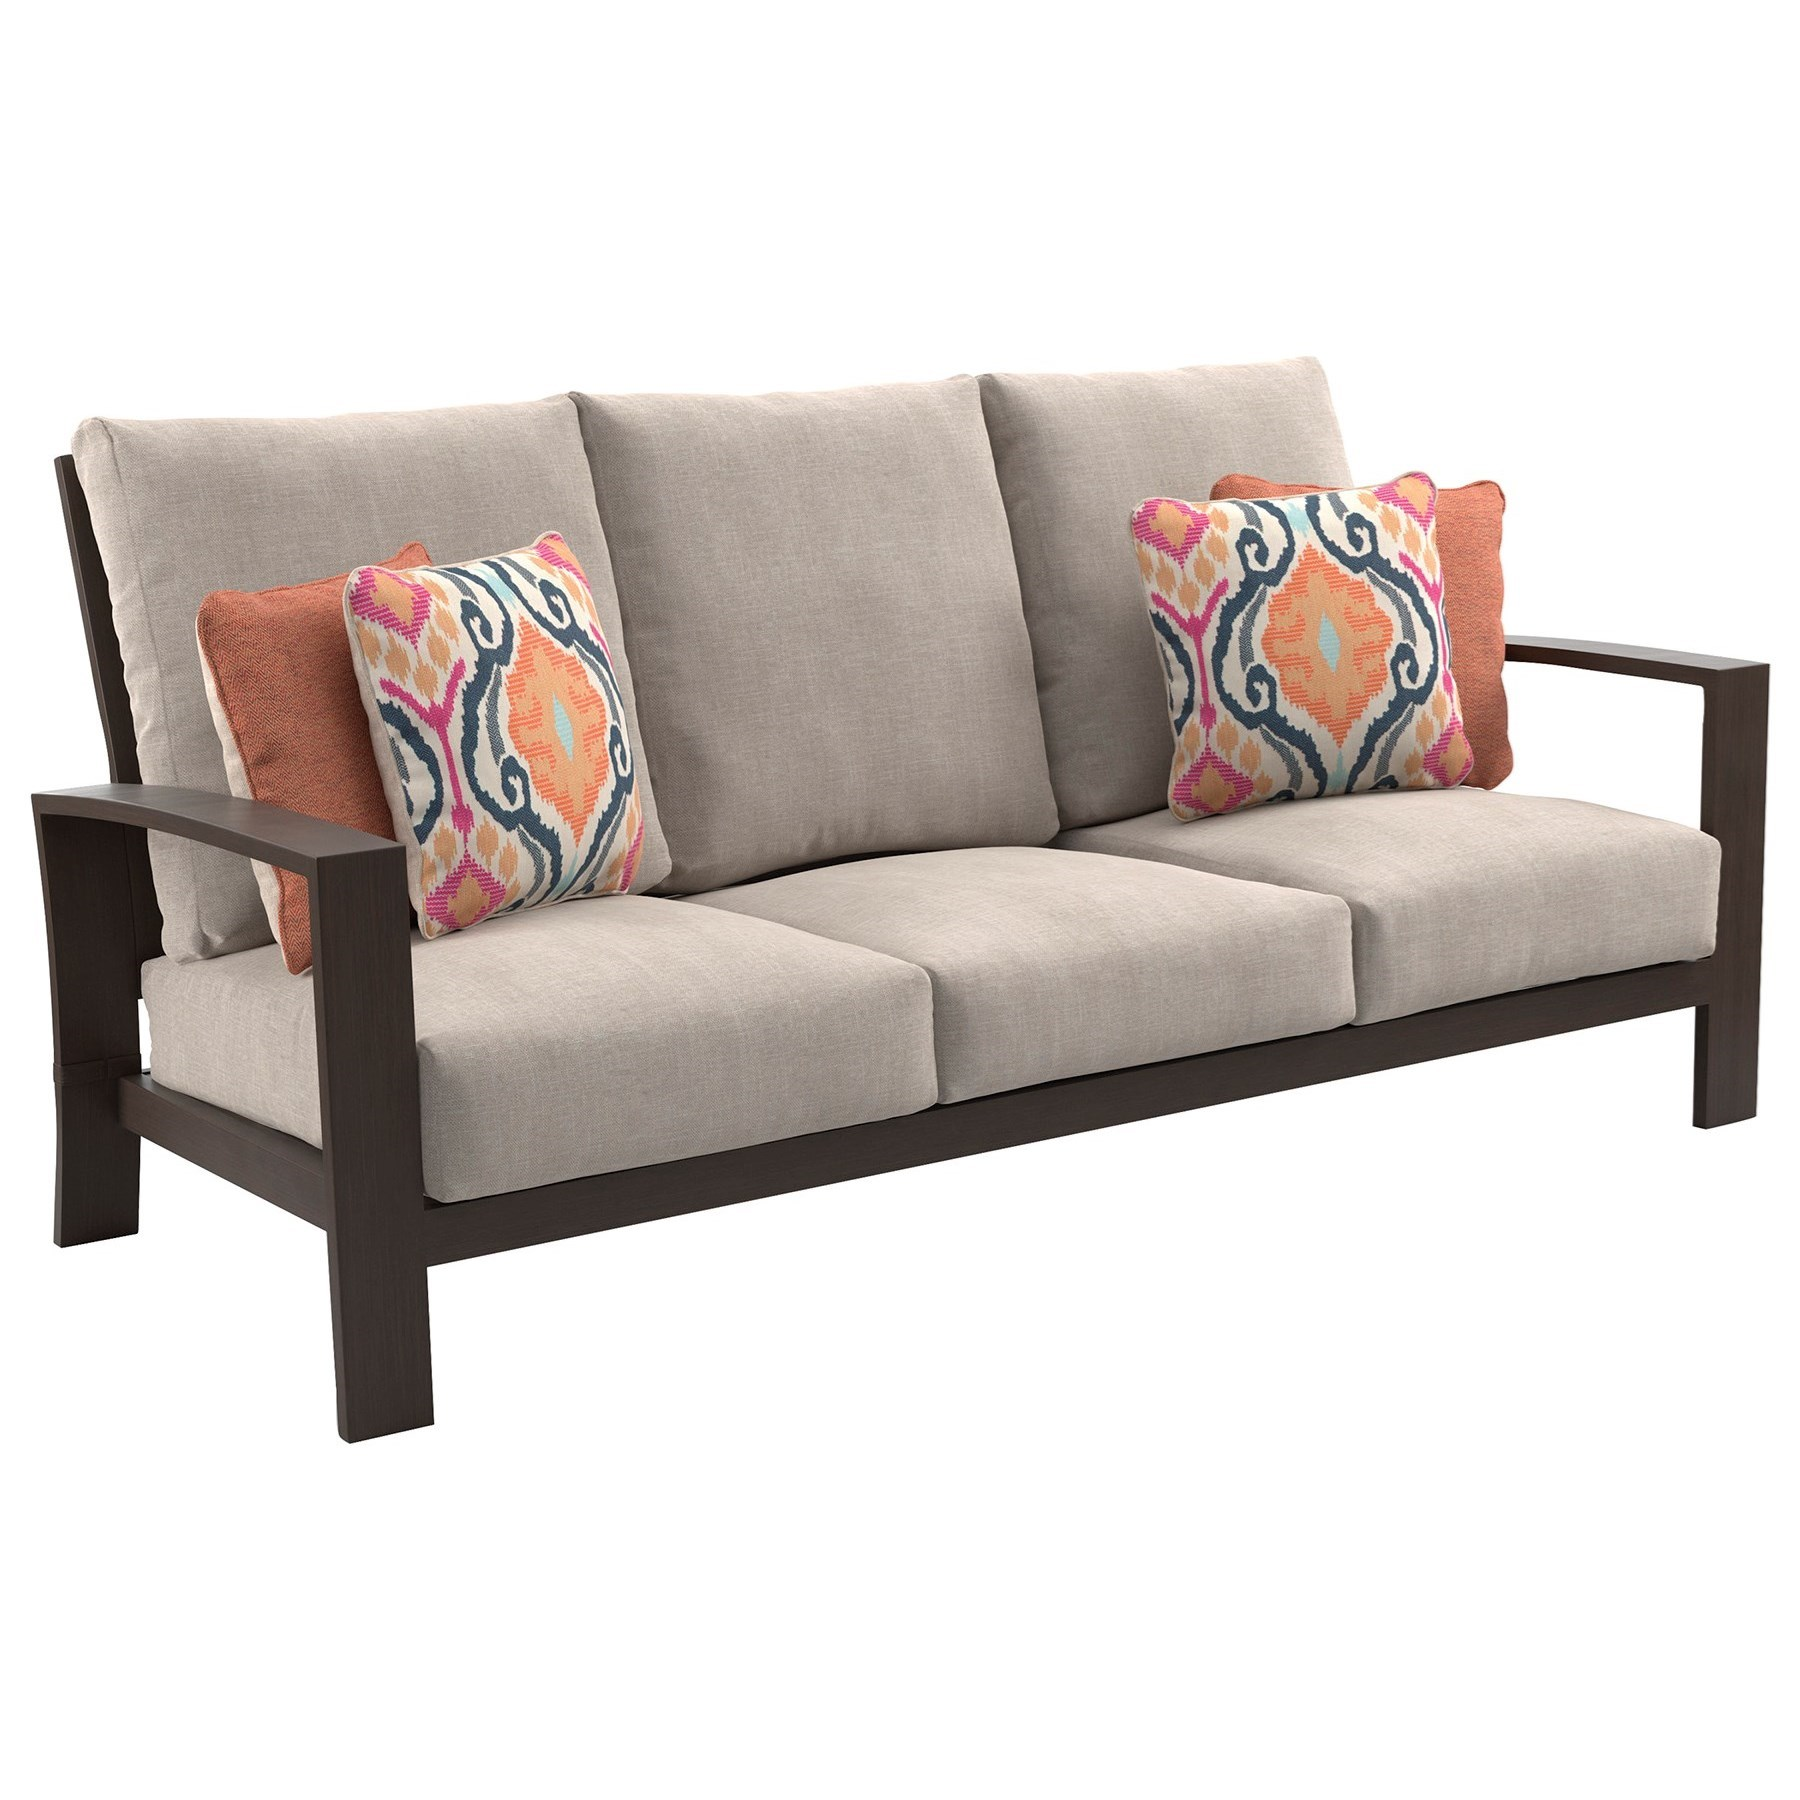 Signature Design by Ashley Cordova Reef Sofa with Cushion - Item Number: P645-838